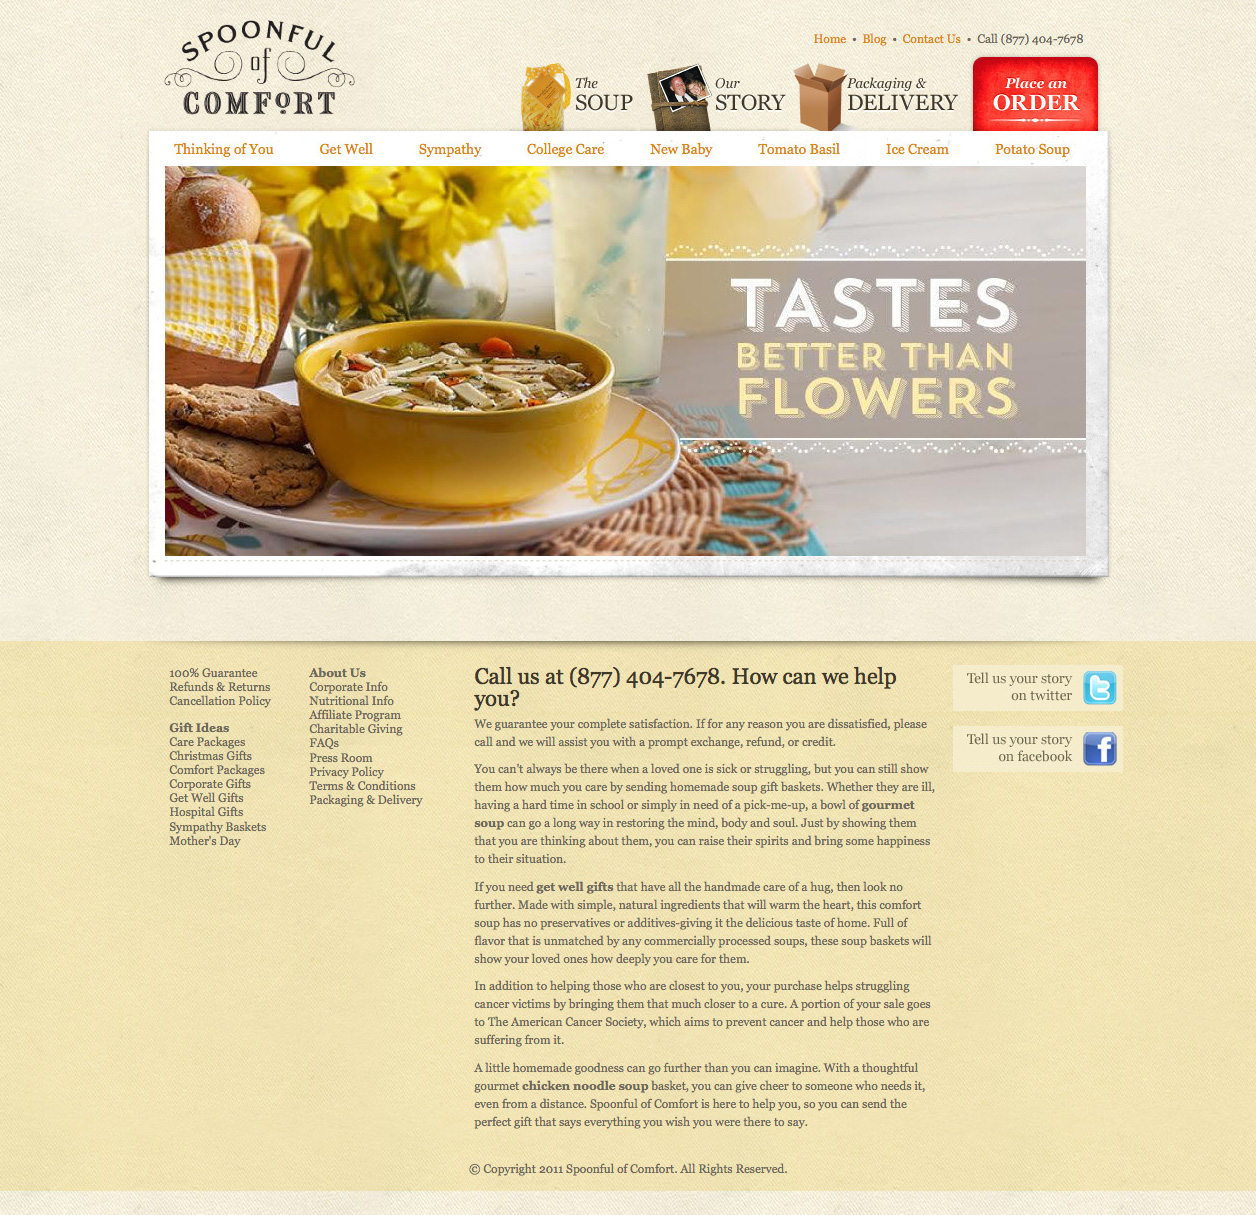 Home page design before